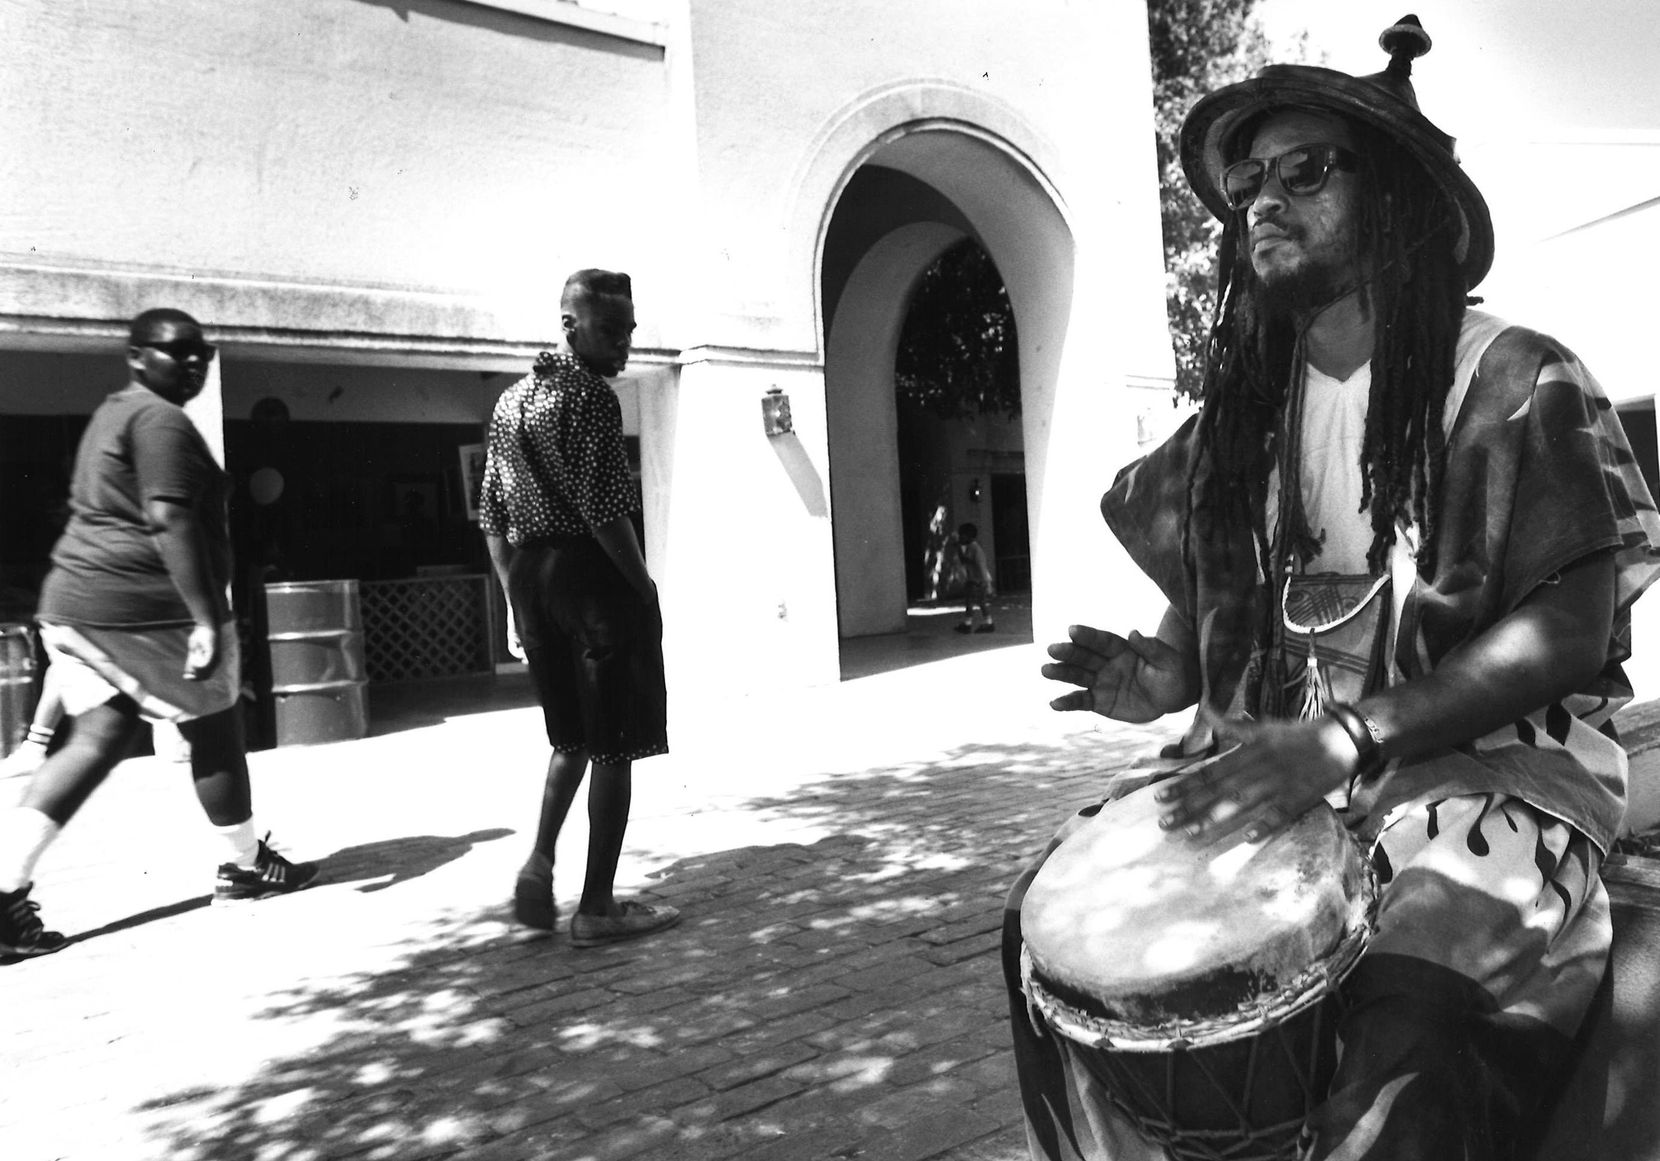 Gaifi Aladfia played his djembe drum at a Juneteenth celebration at Fair Park